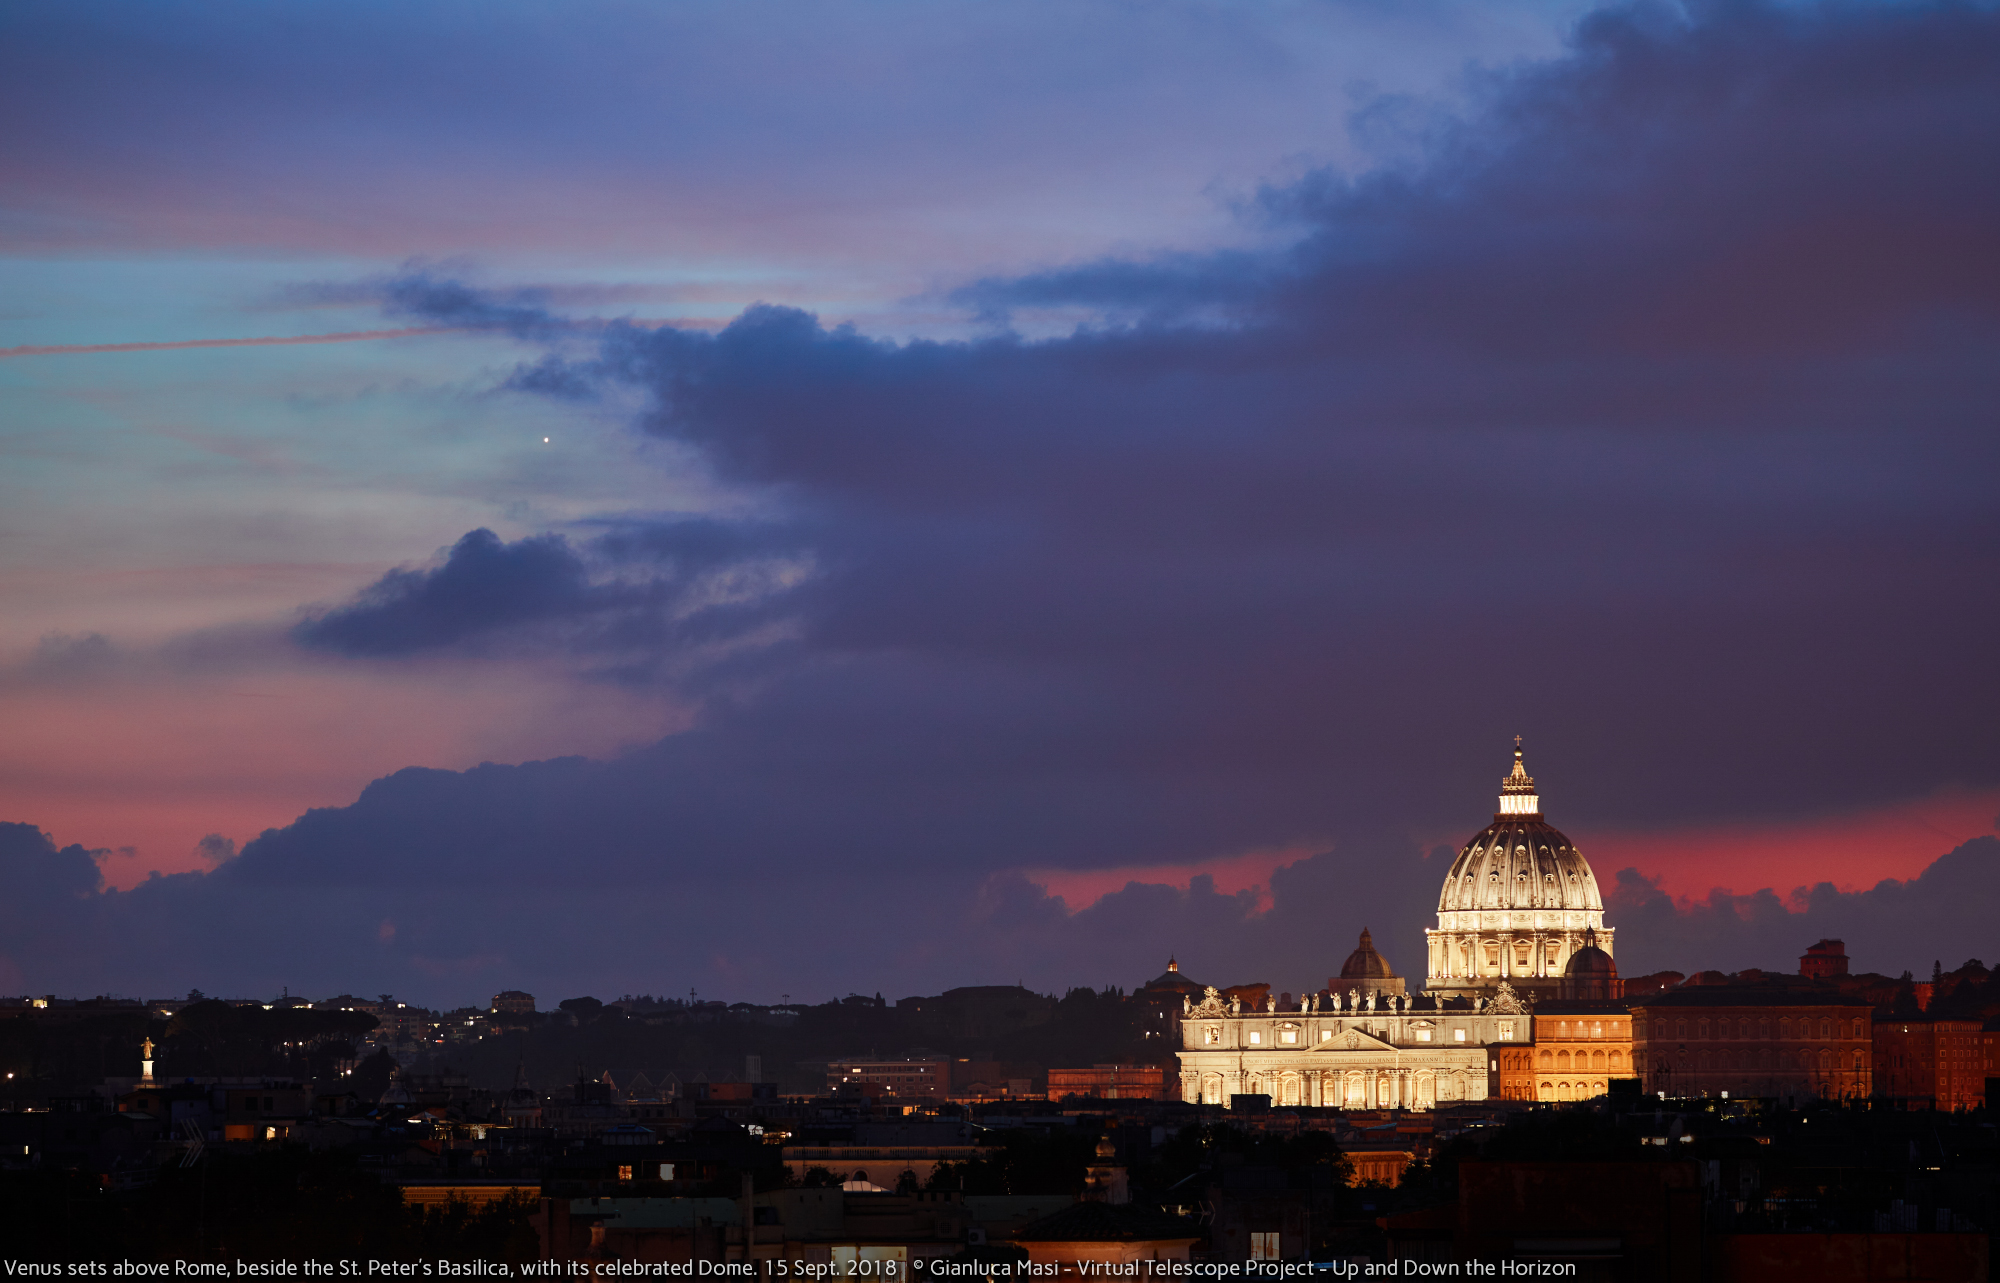 Venus sets beside the legendary St. Peter's Dome and Basilica - 15 Sept. 2018